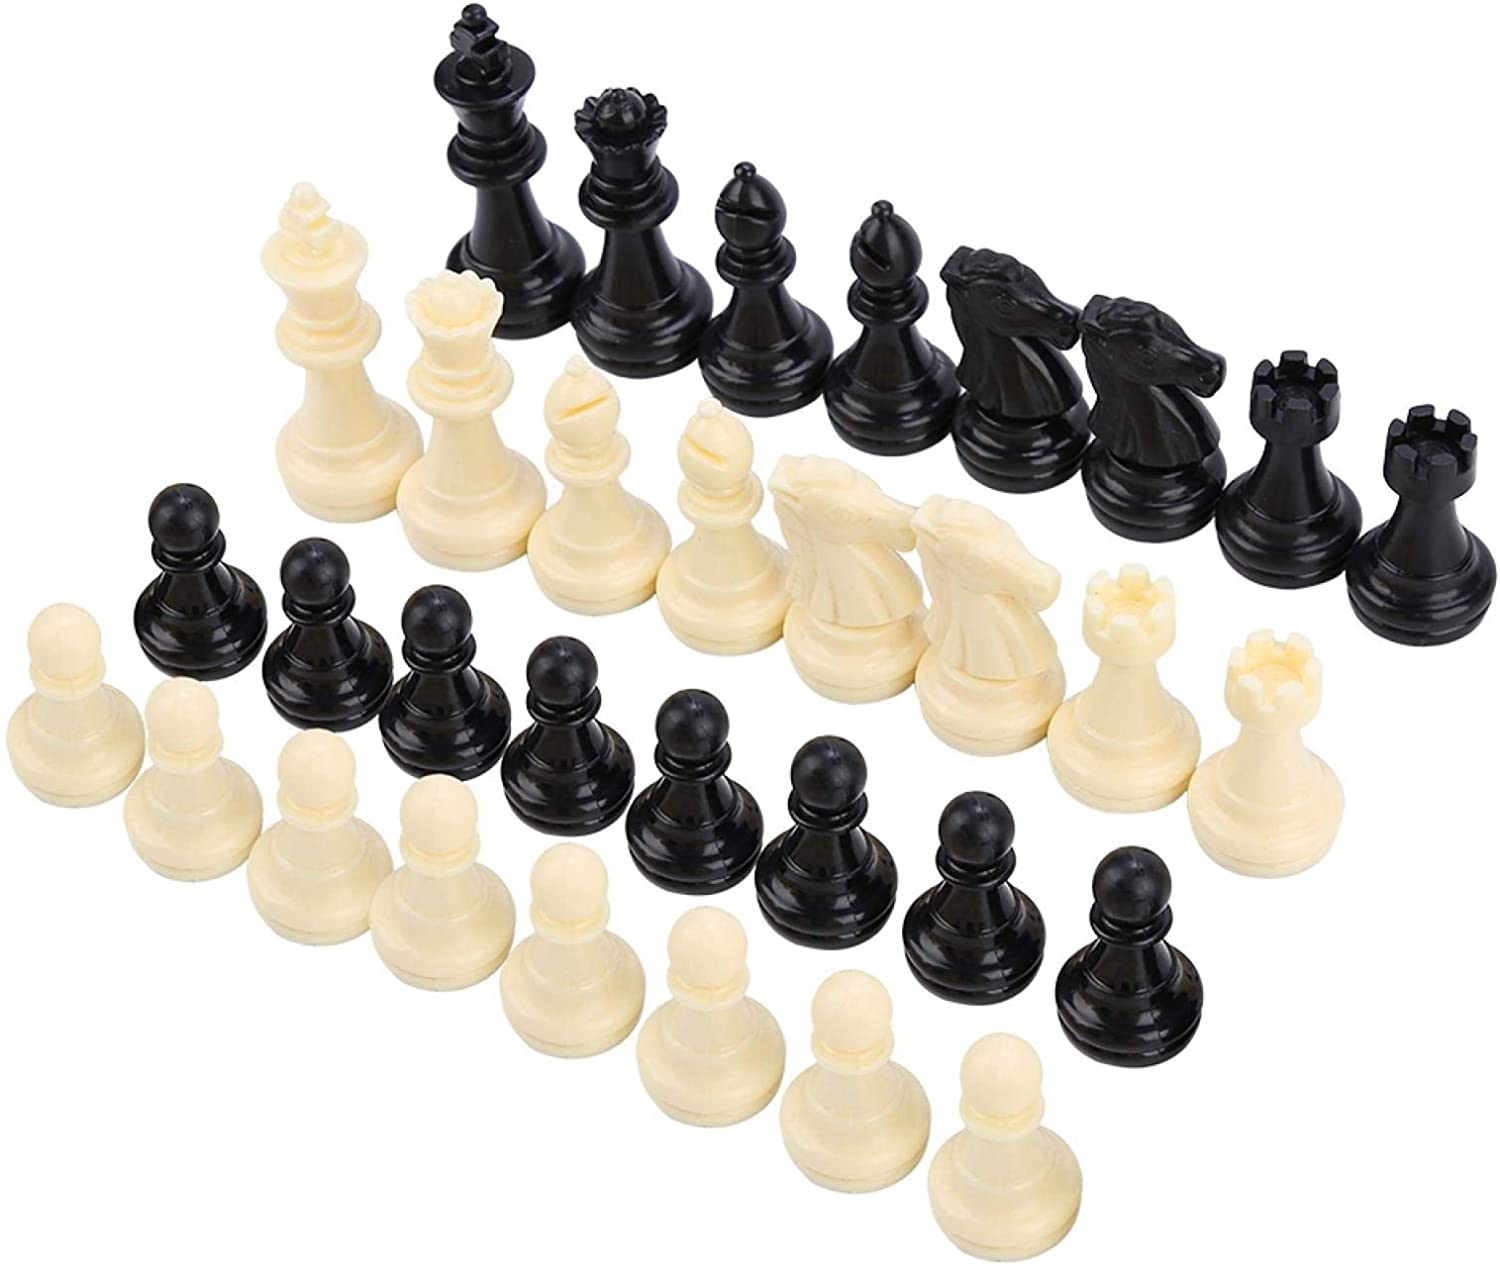 FOLANY CHESS DURABLE ENTERTAINMENT TOOL PLASTIC PORTABLE CHESS PIECE REPLACEMENT CHESS PIECE HOME FOR ADULTS OUTDOOR FOR KIDS